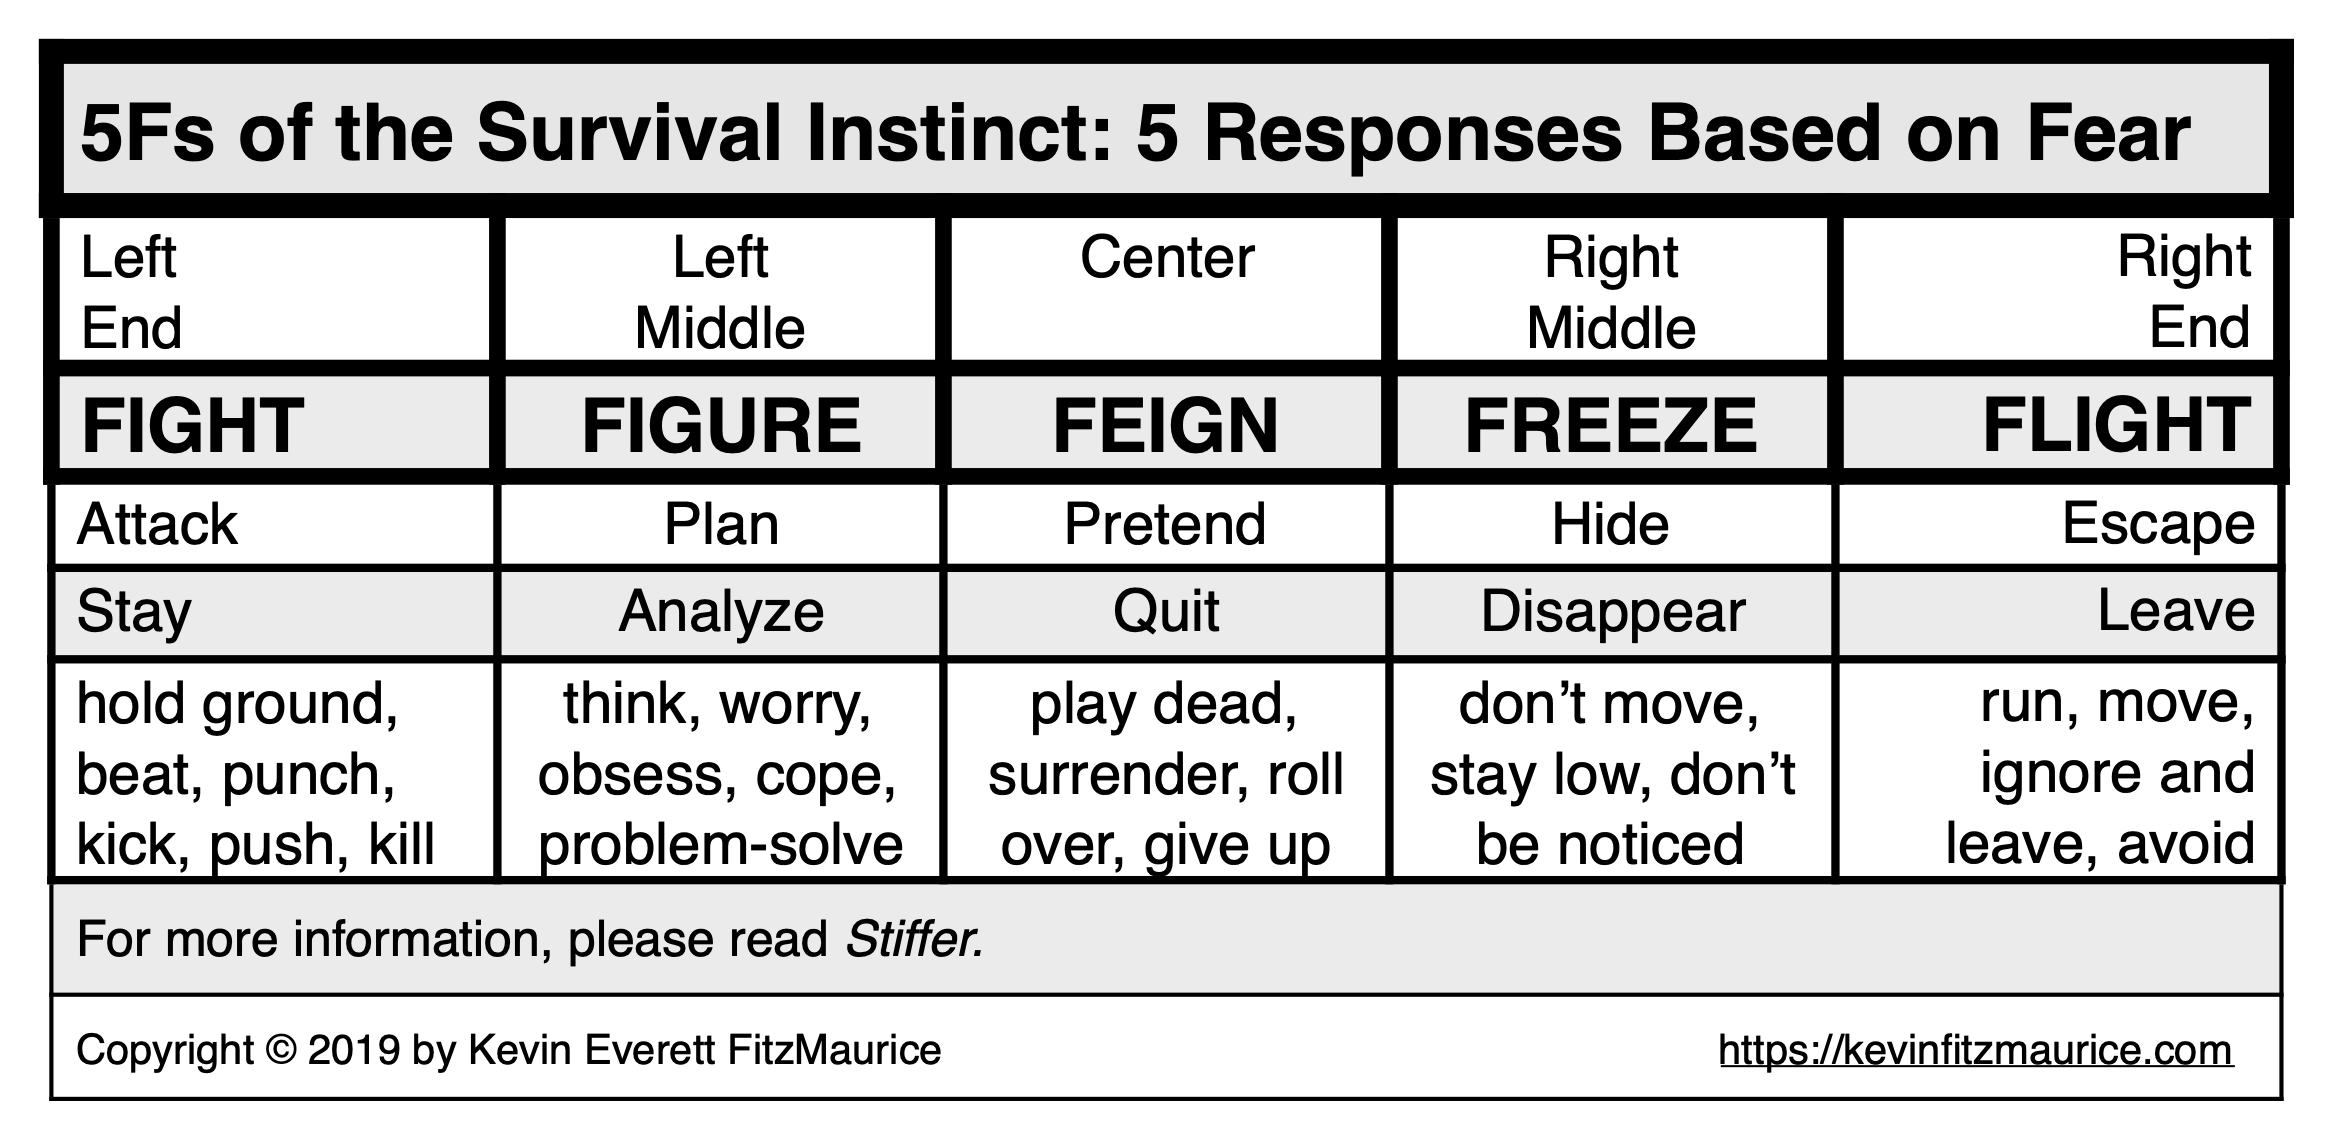 The 5Fs of the Survival Instinct